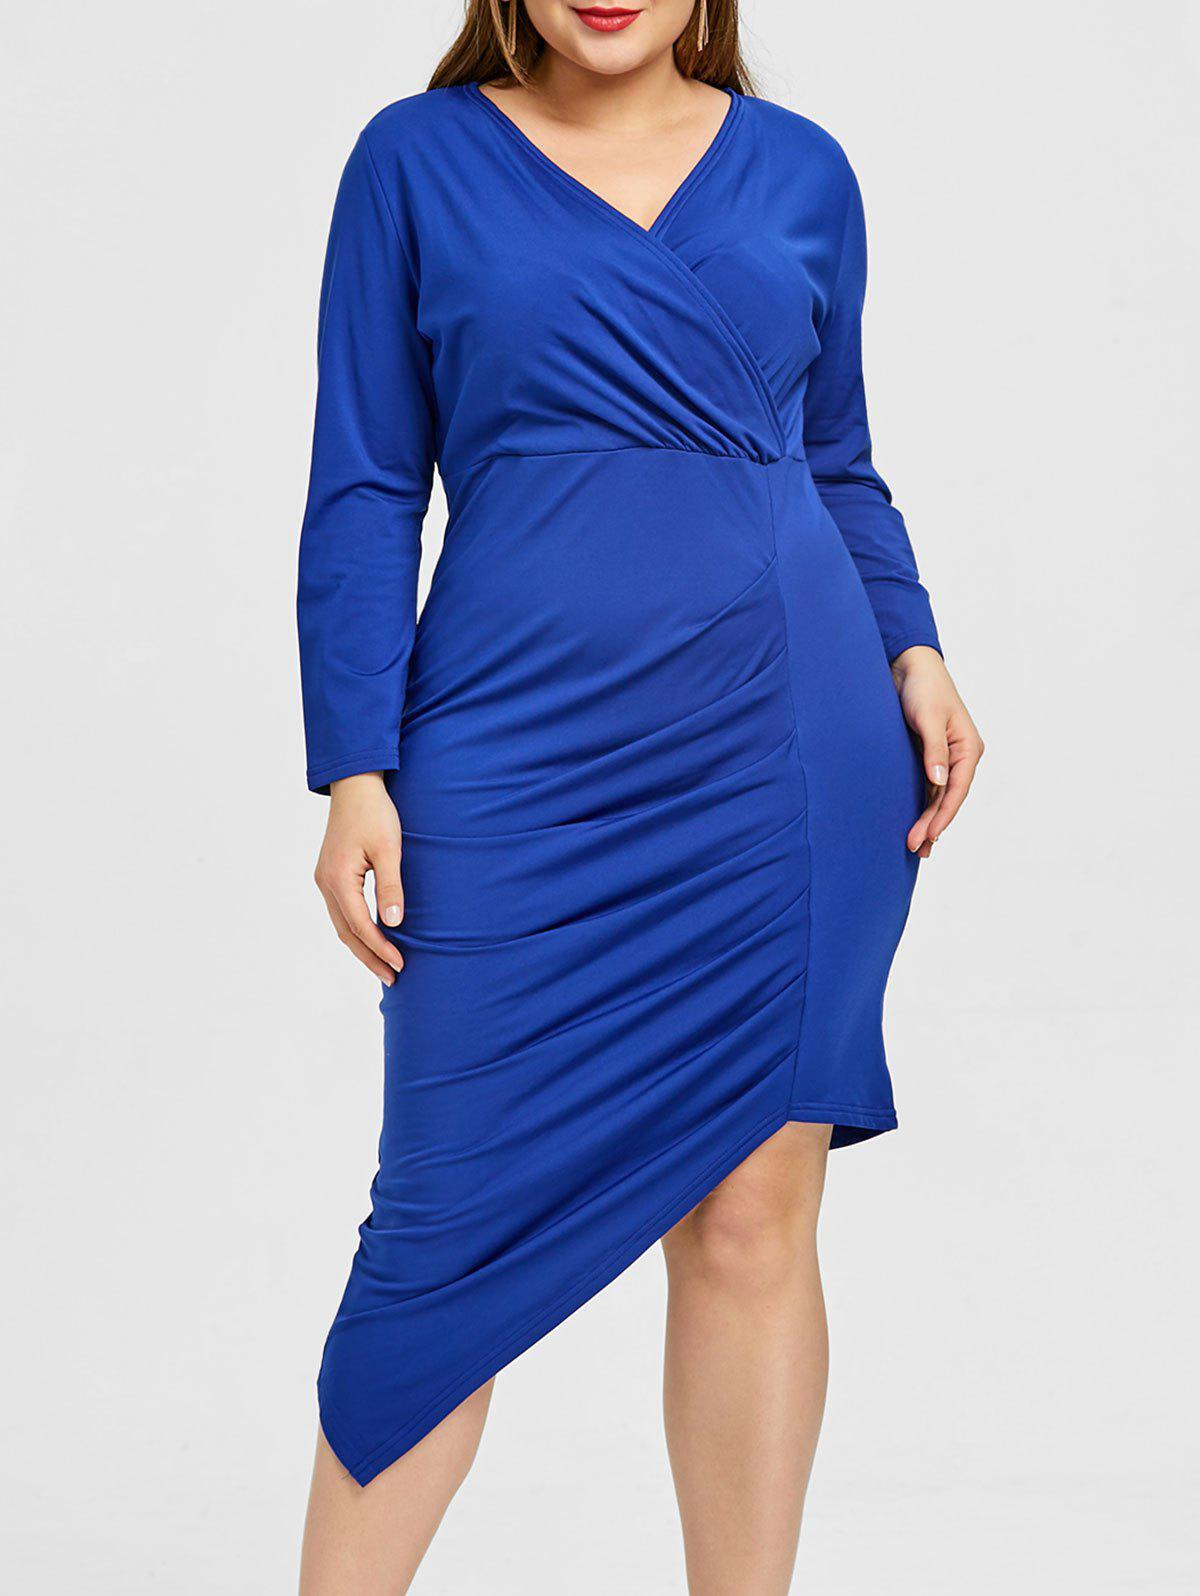 Chic Surplice Asymmetrical Ruched Plus Size Dress